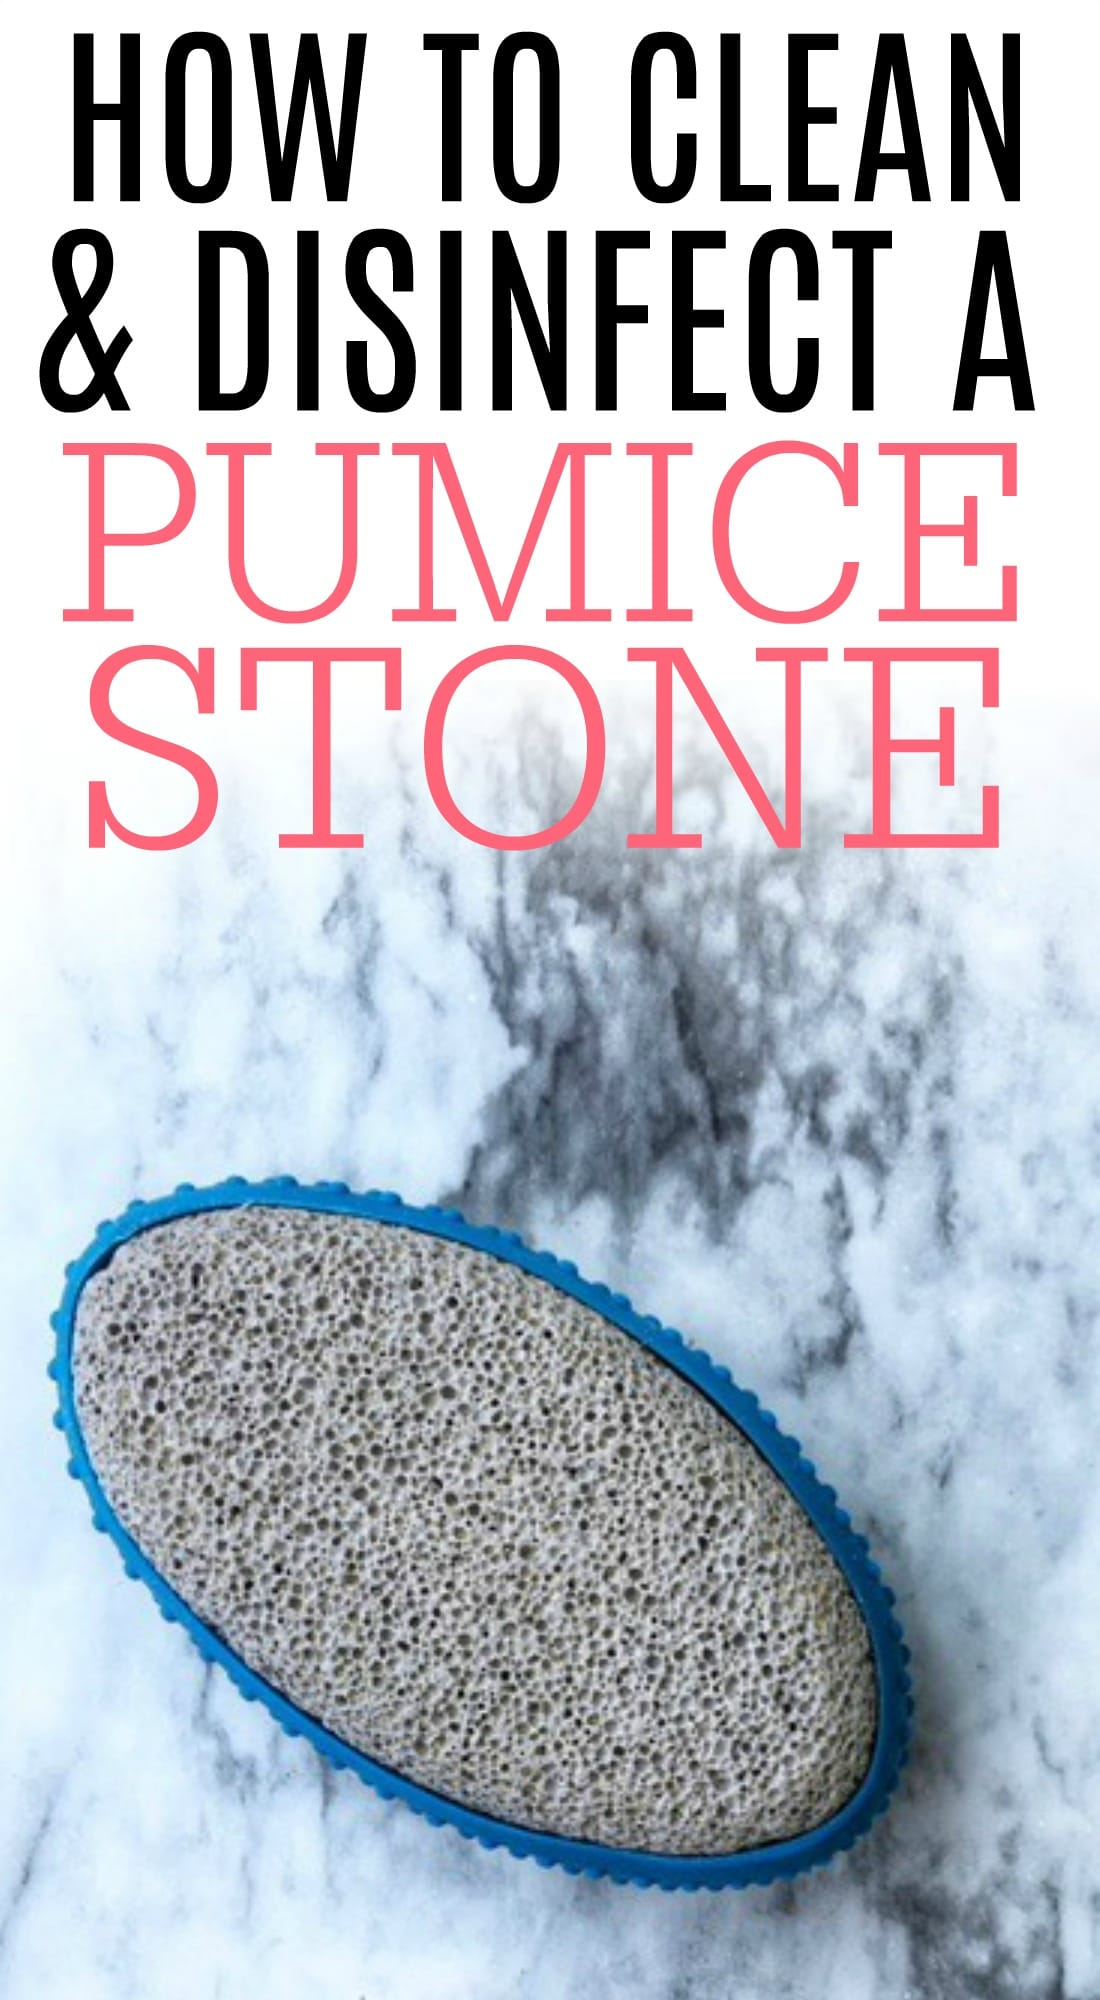 Keep your pumice stone free from germs and bacteria with these simple tips. See how to clean a pumice stone quickly and easily.